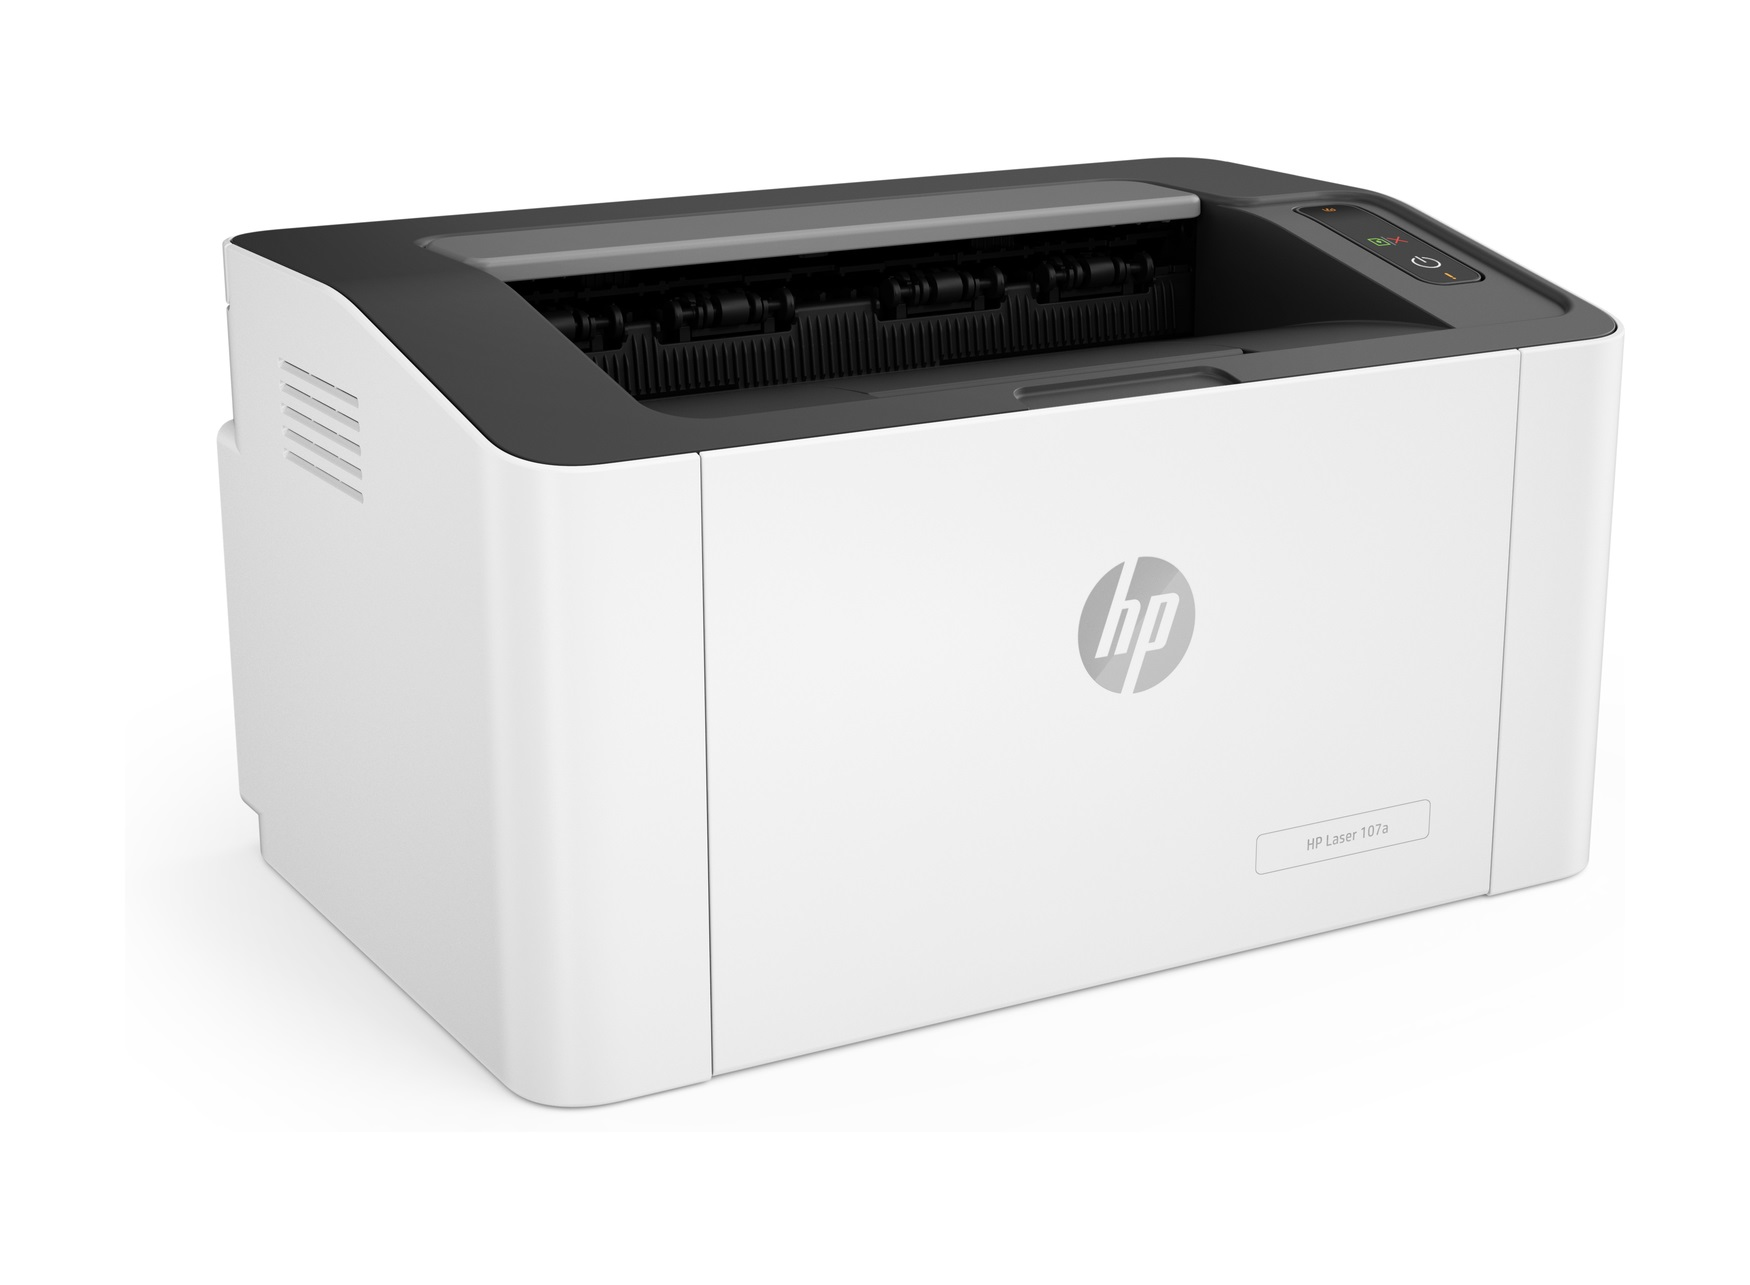 HP Laser 107w Ubuntu Driver How to Download & Install - Featured